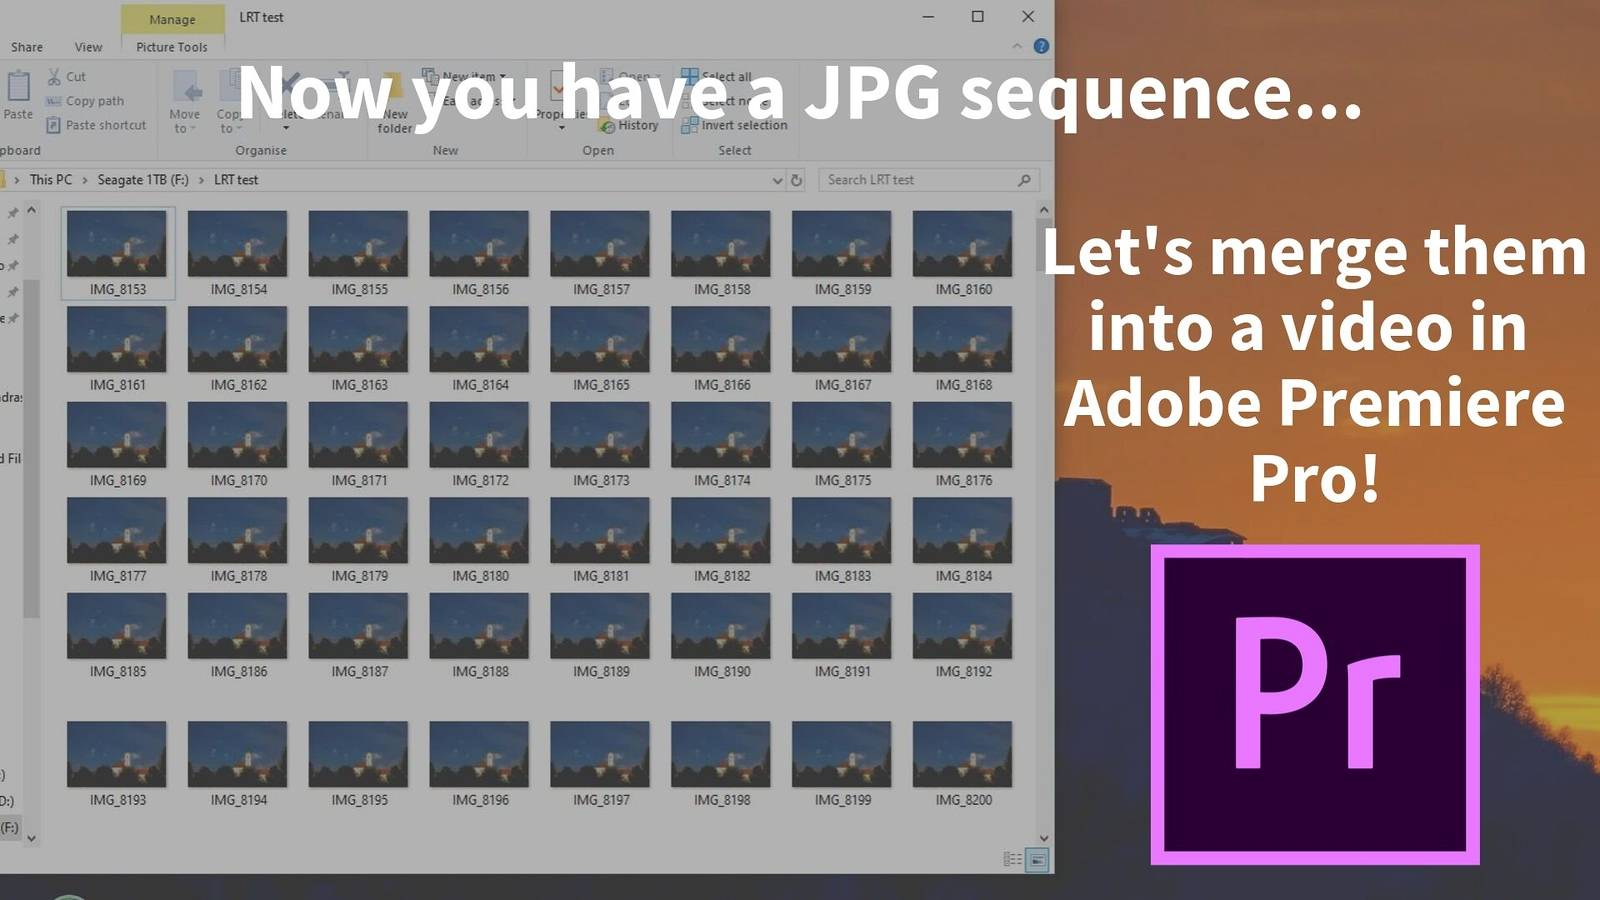 jpg sequence ready